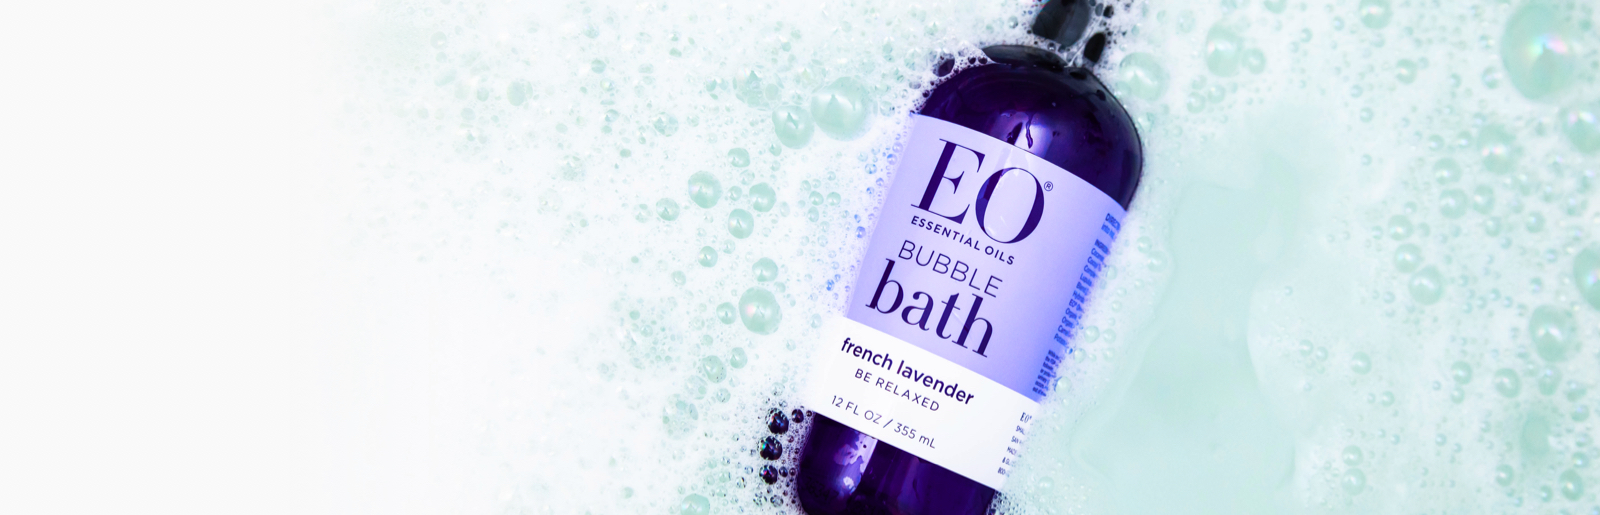 Organic Bath And Shower Care Eo Products Bubble Foam Aromatherapy Pure French Lavender Essential Oil Rose Filters Eucalyptus